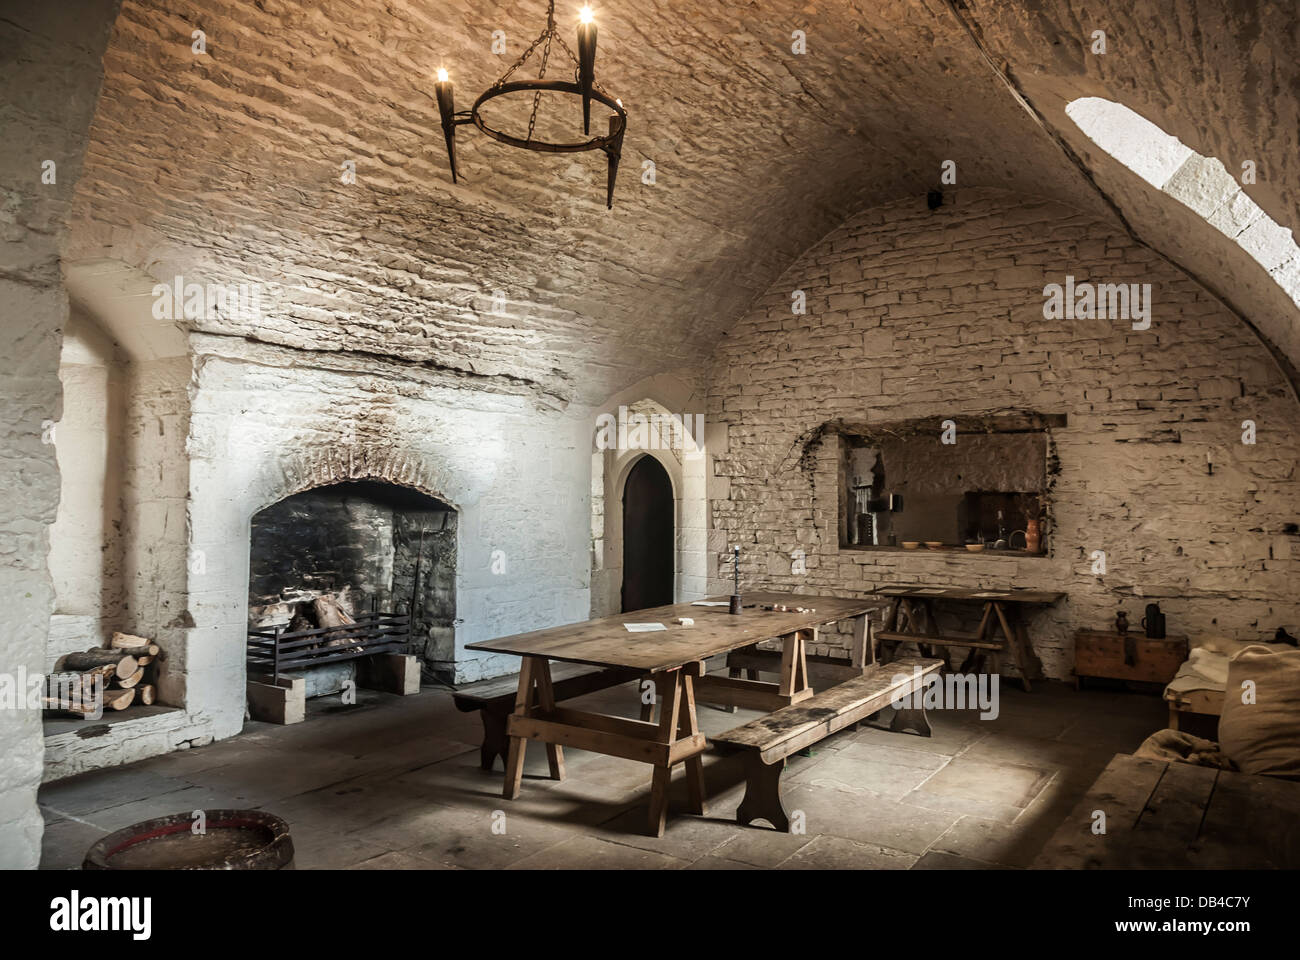 A Dining Room Kitchen Inside A Medieval Castle Stock Photo